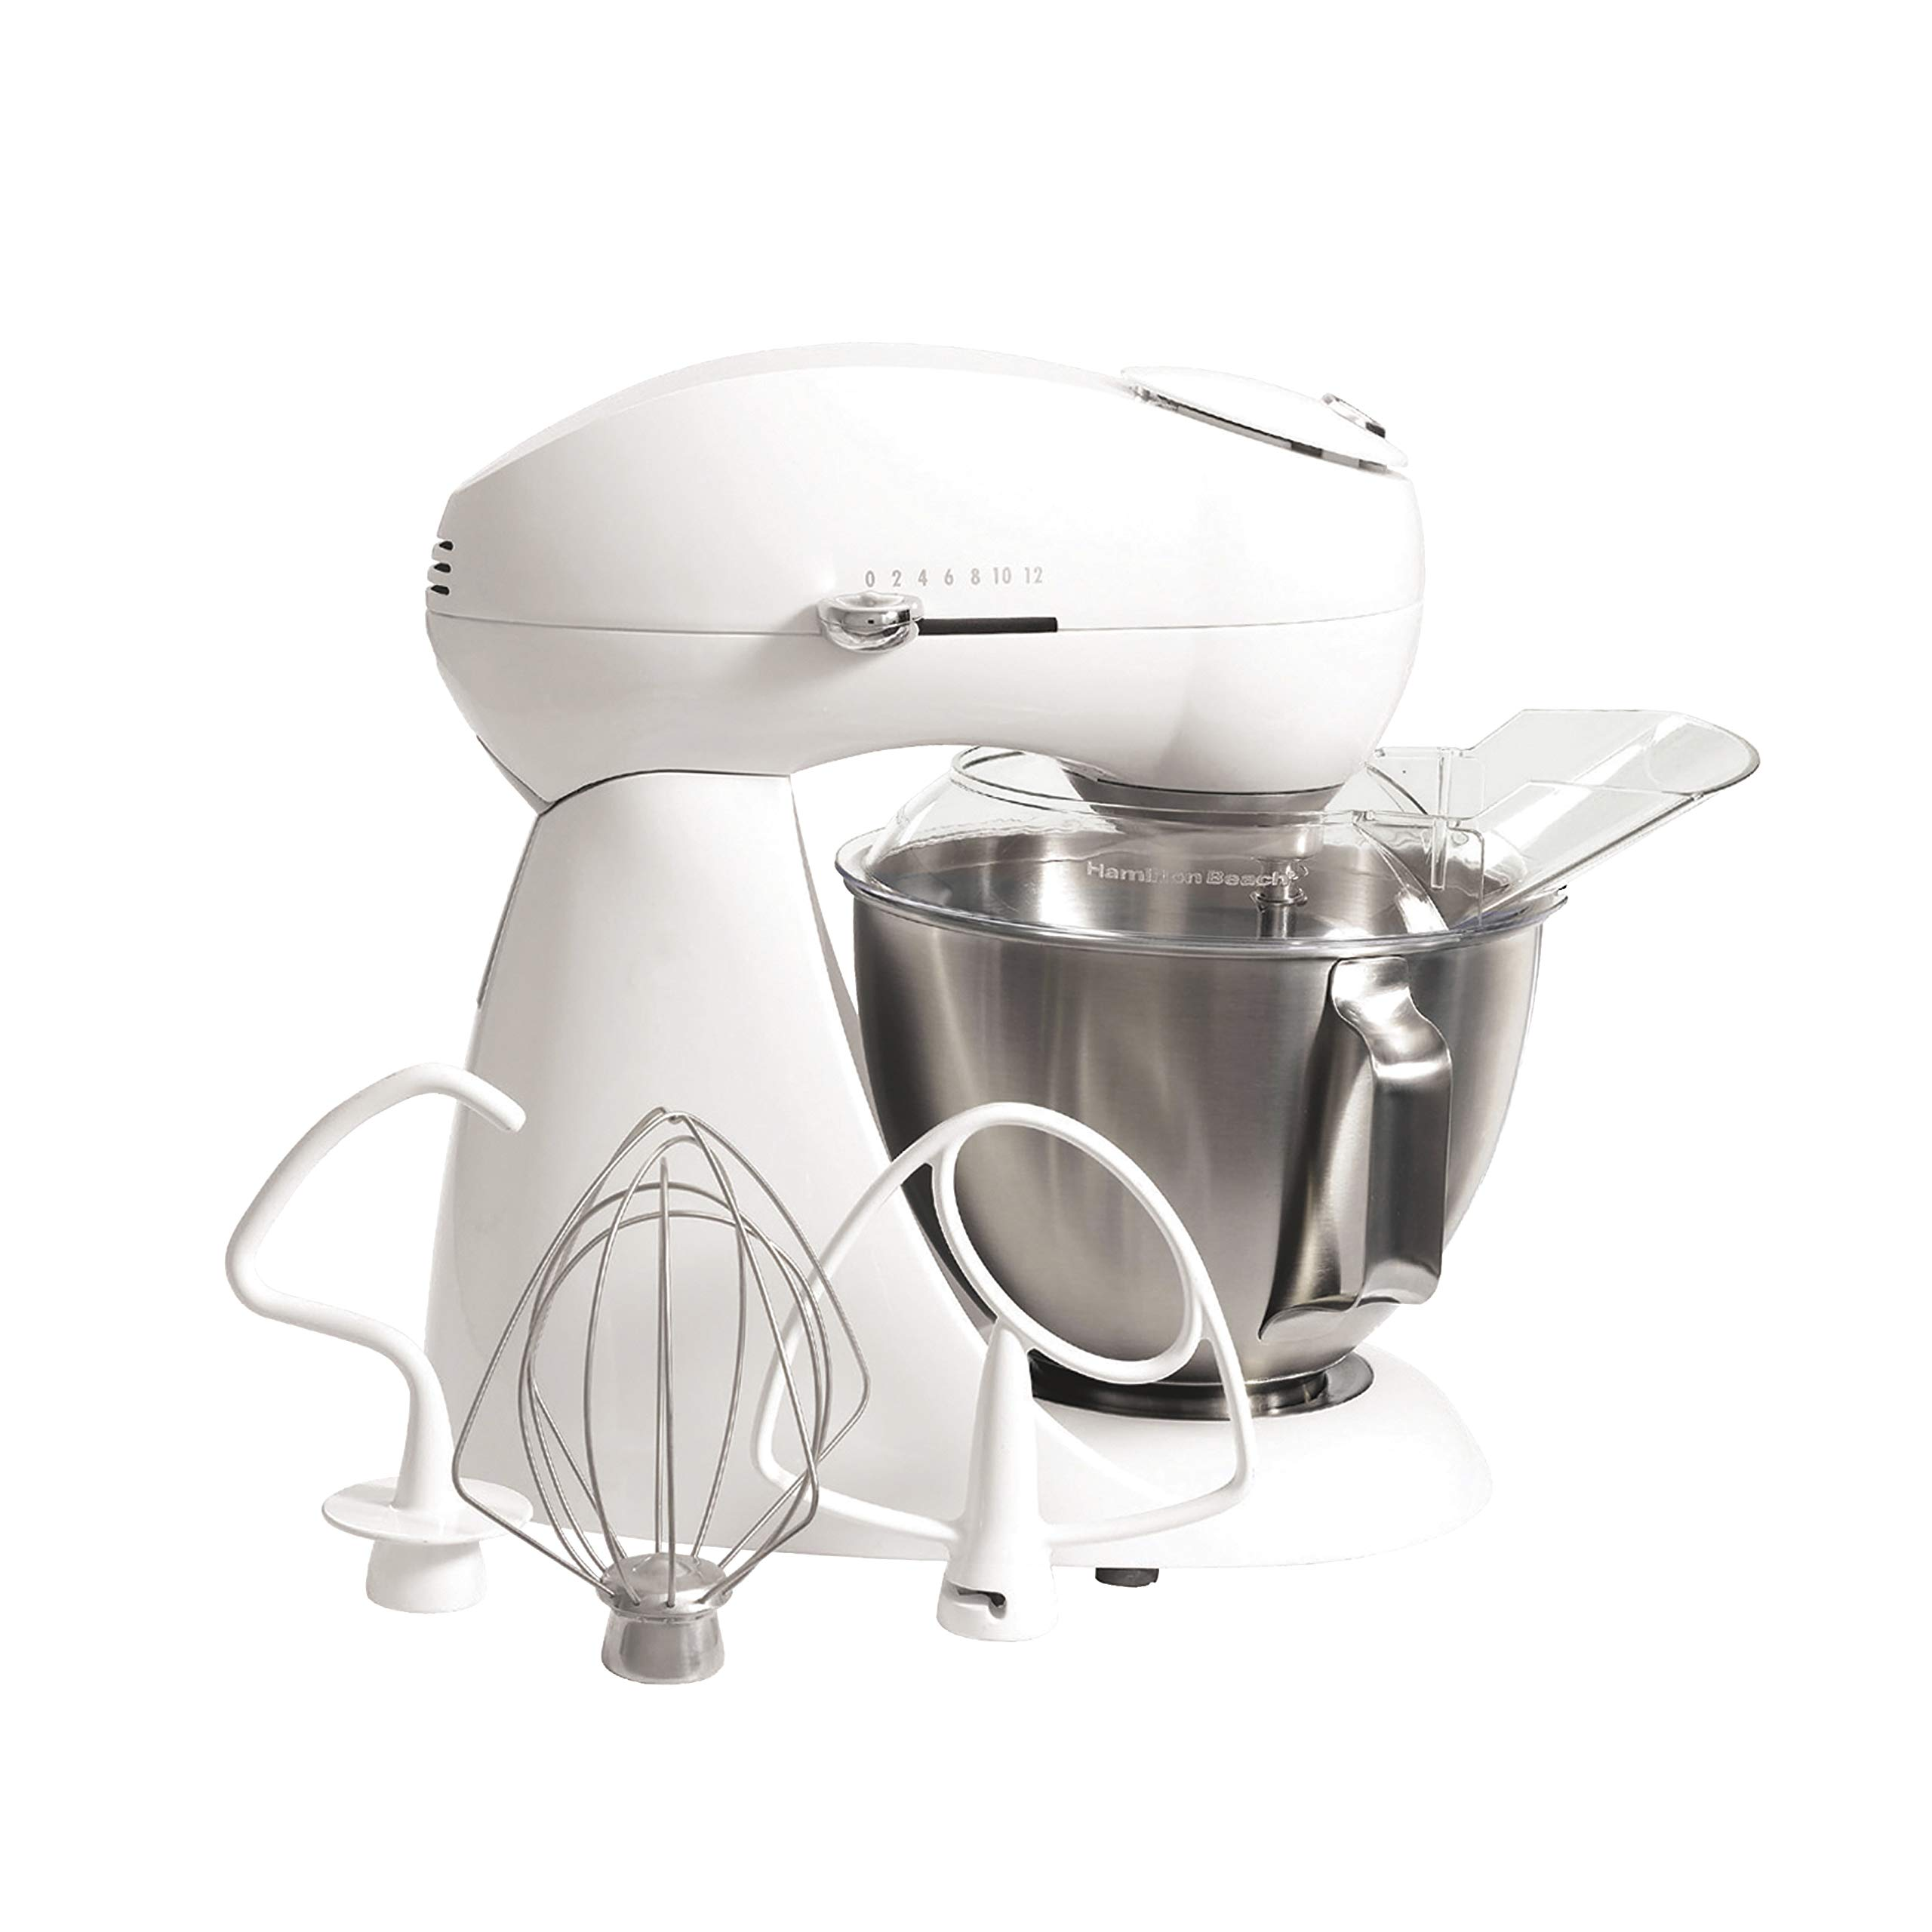 Hamilton Beach Eclectrics All-Metal 12-Speed Electric Stand Mixer, Tilt-Head, 4.5 quart, Pouring Shield, Sugar (63221) by Hamilton Beach